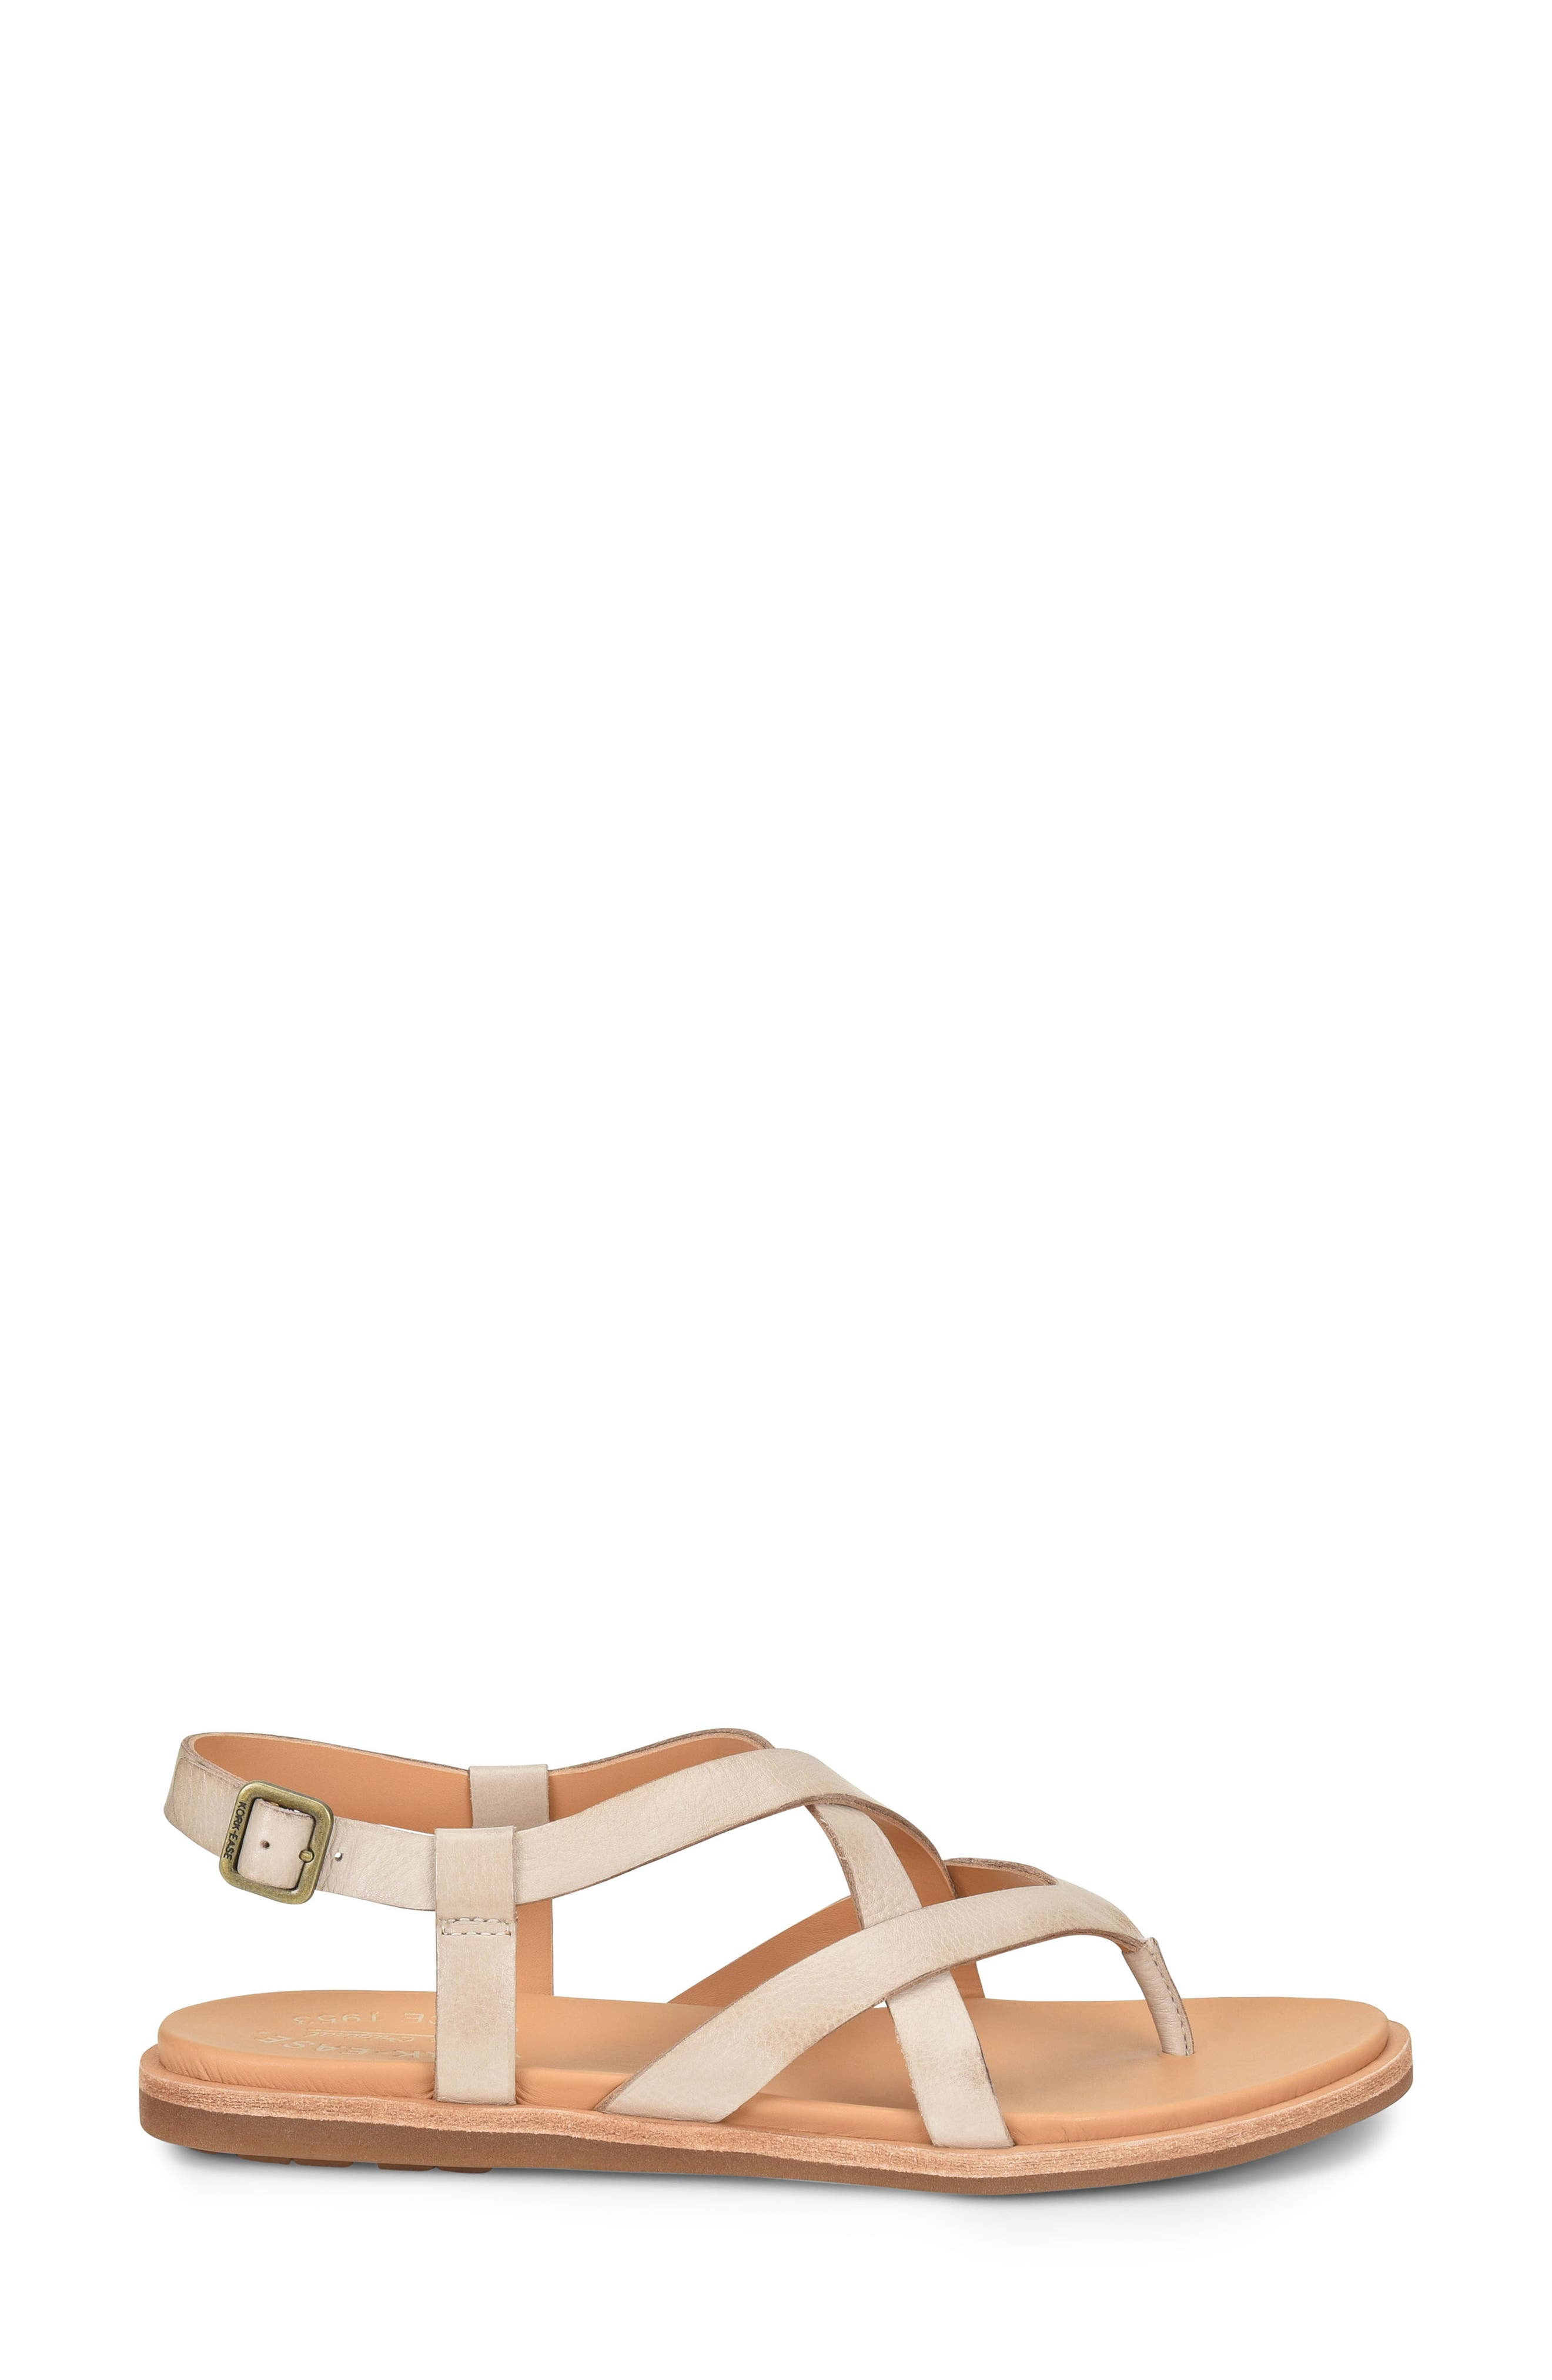 KORK-EASE<SUP>®</SUP>, Yarbrough Sandal, Alternate thumbnail 3, color, LIGHT GREY LEATHER